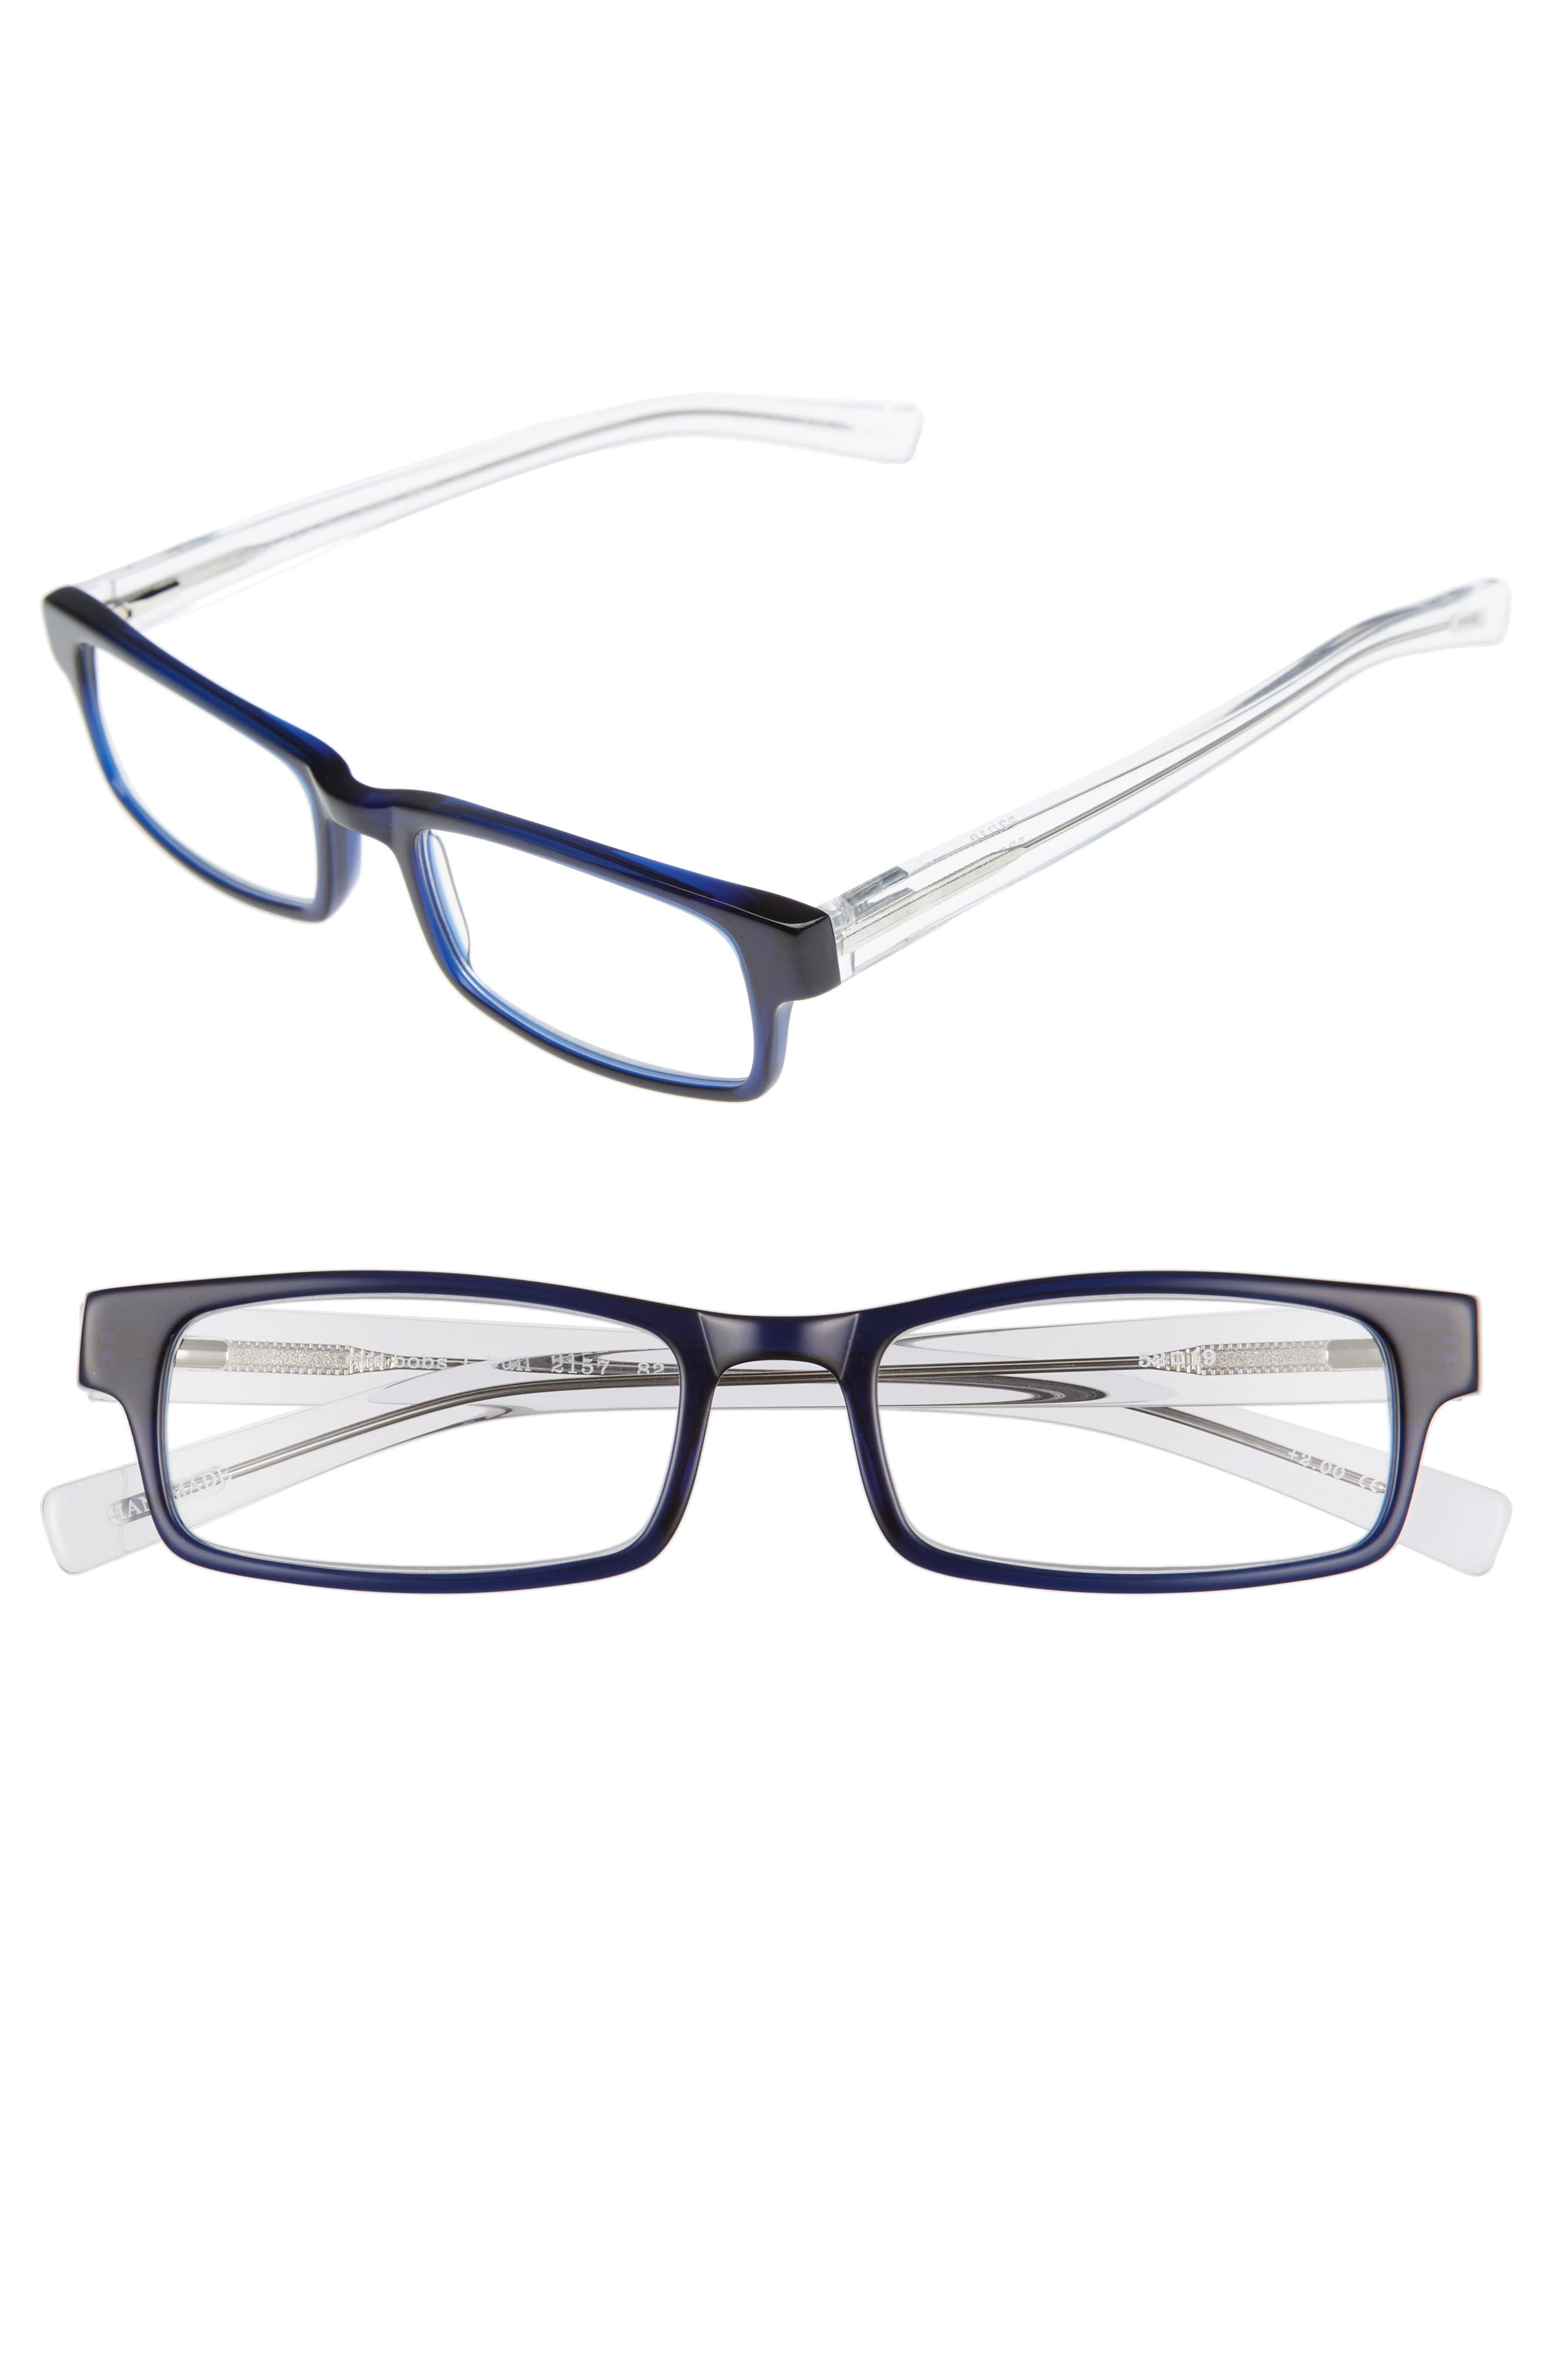 I Ball 52mm Reading Glasses,                             Main thumbnail 1, color,                             Navy With Clear